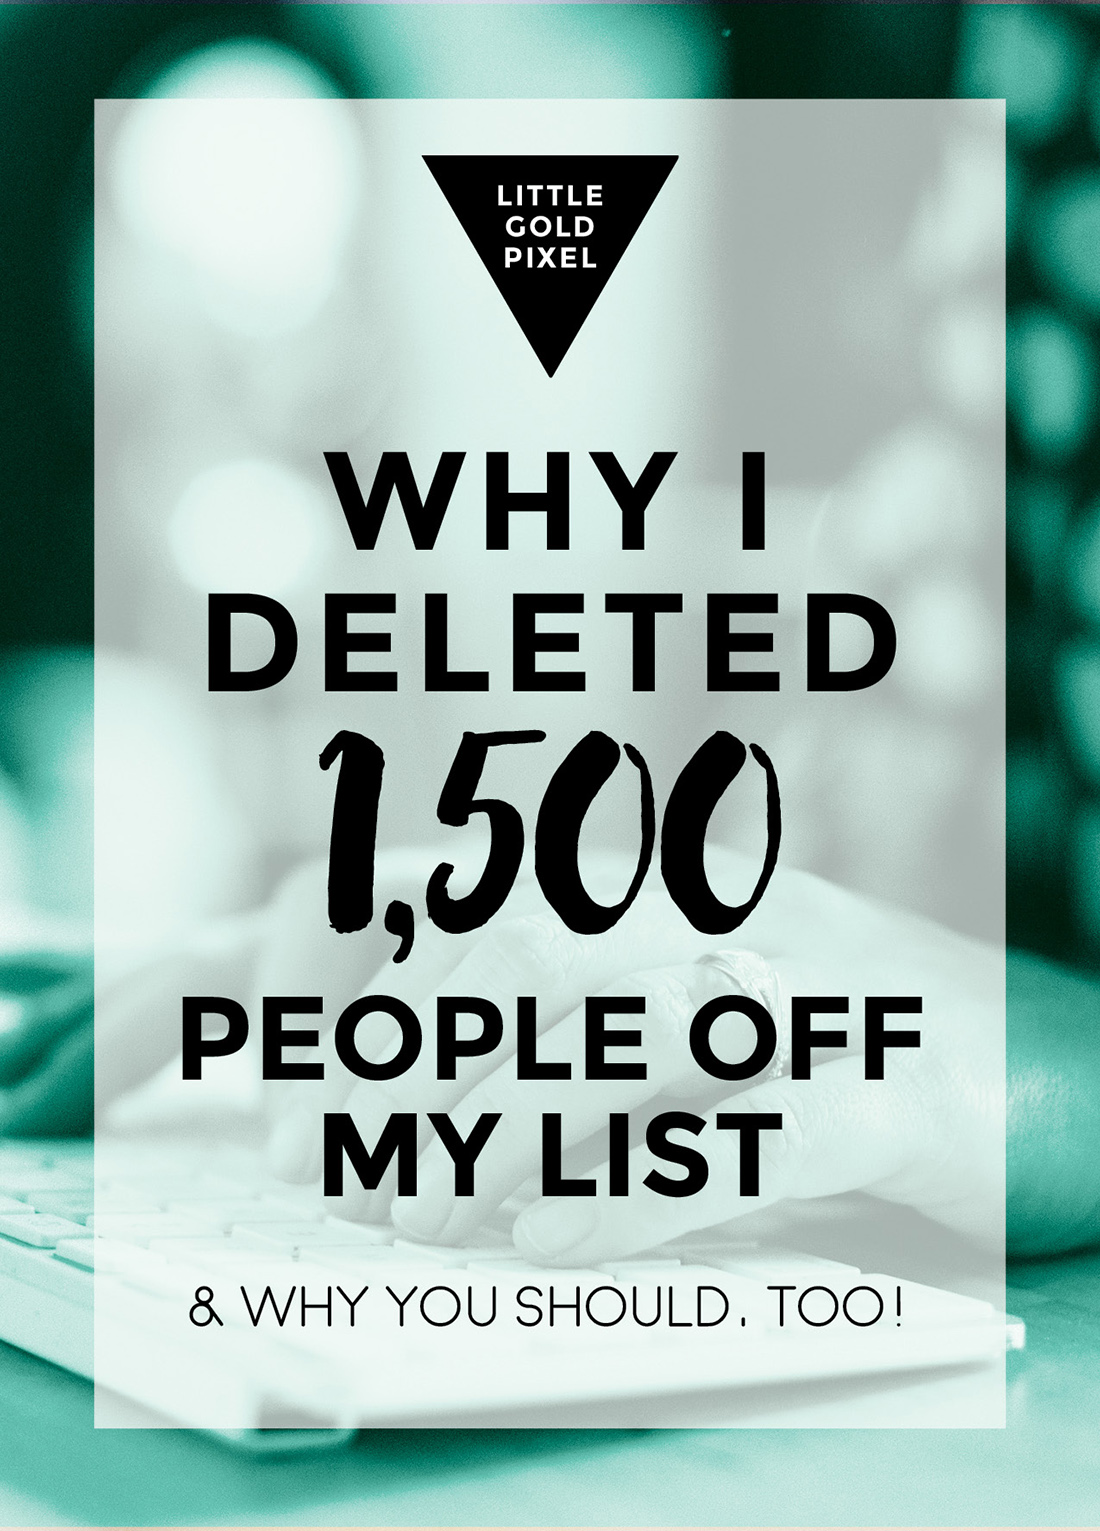 Why I Deleted 1,500 Email Addresses (And Why You Should, Too) • Little Gold Pixel